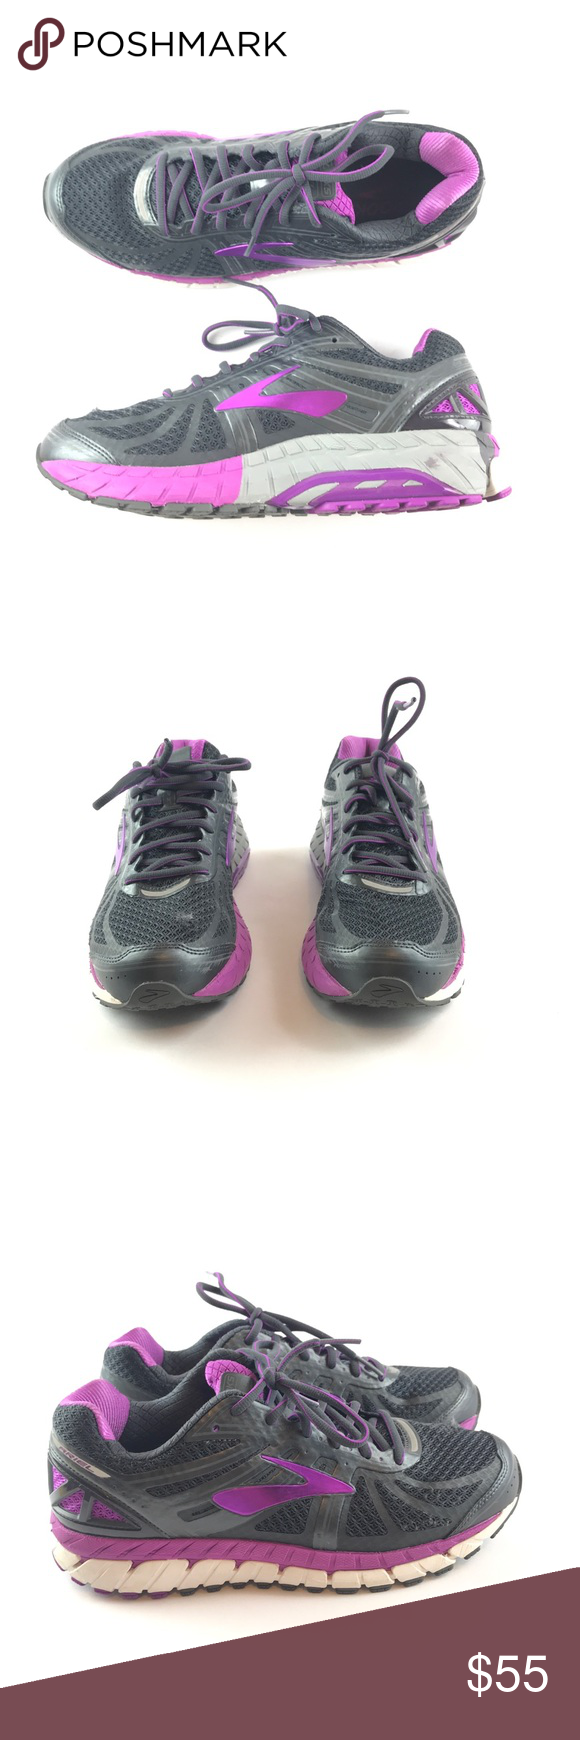 a4290aef7b6 Brooks Ariel 16 Women s Running Shoes Description  Brooks Ariel 16 Women s  Running Shoe Item Condition over all great condition all hole in toe box.